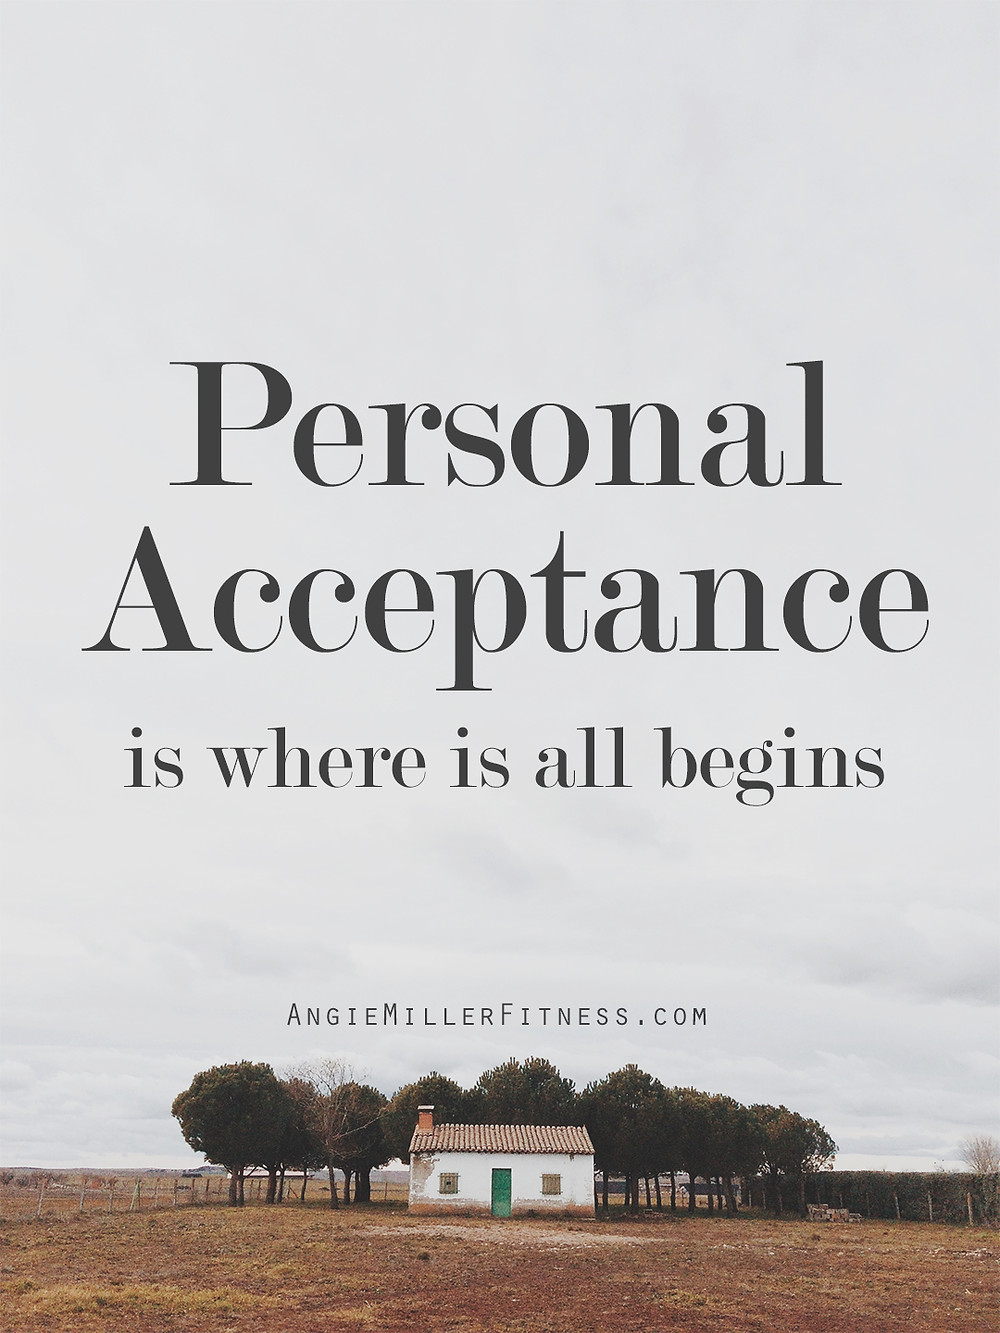 Personal Acceptance, Angie Miller